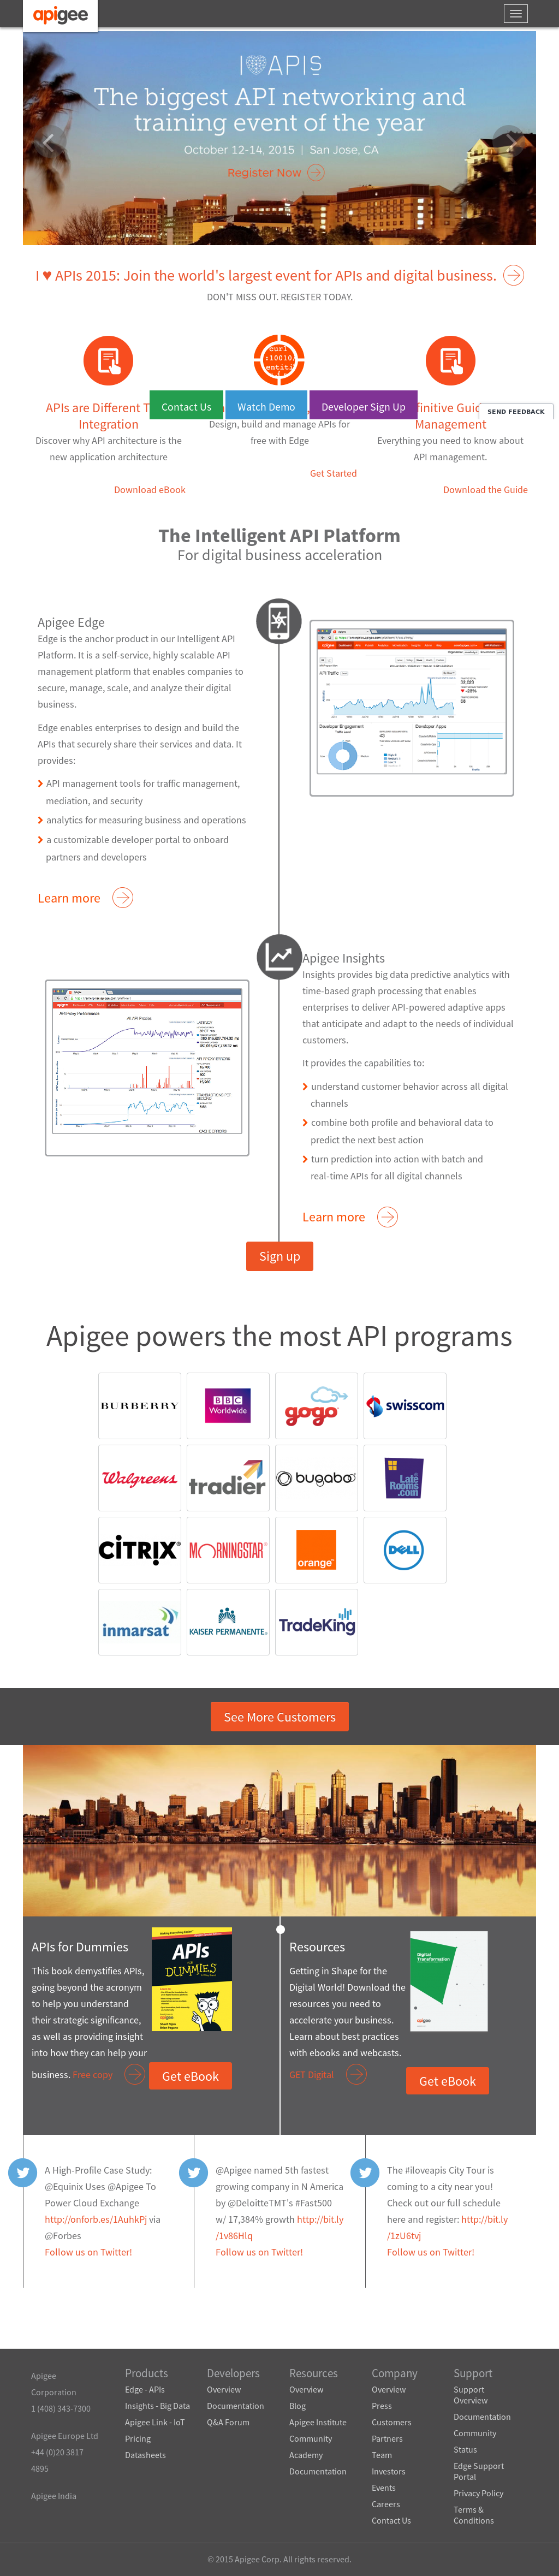 Apigee Competitors, Revenue and Employees - Owler Company